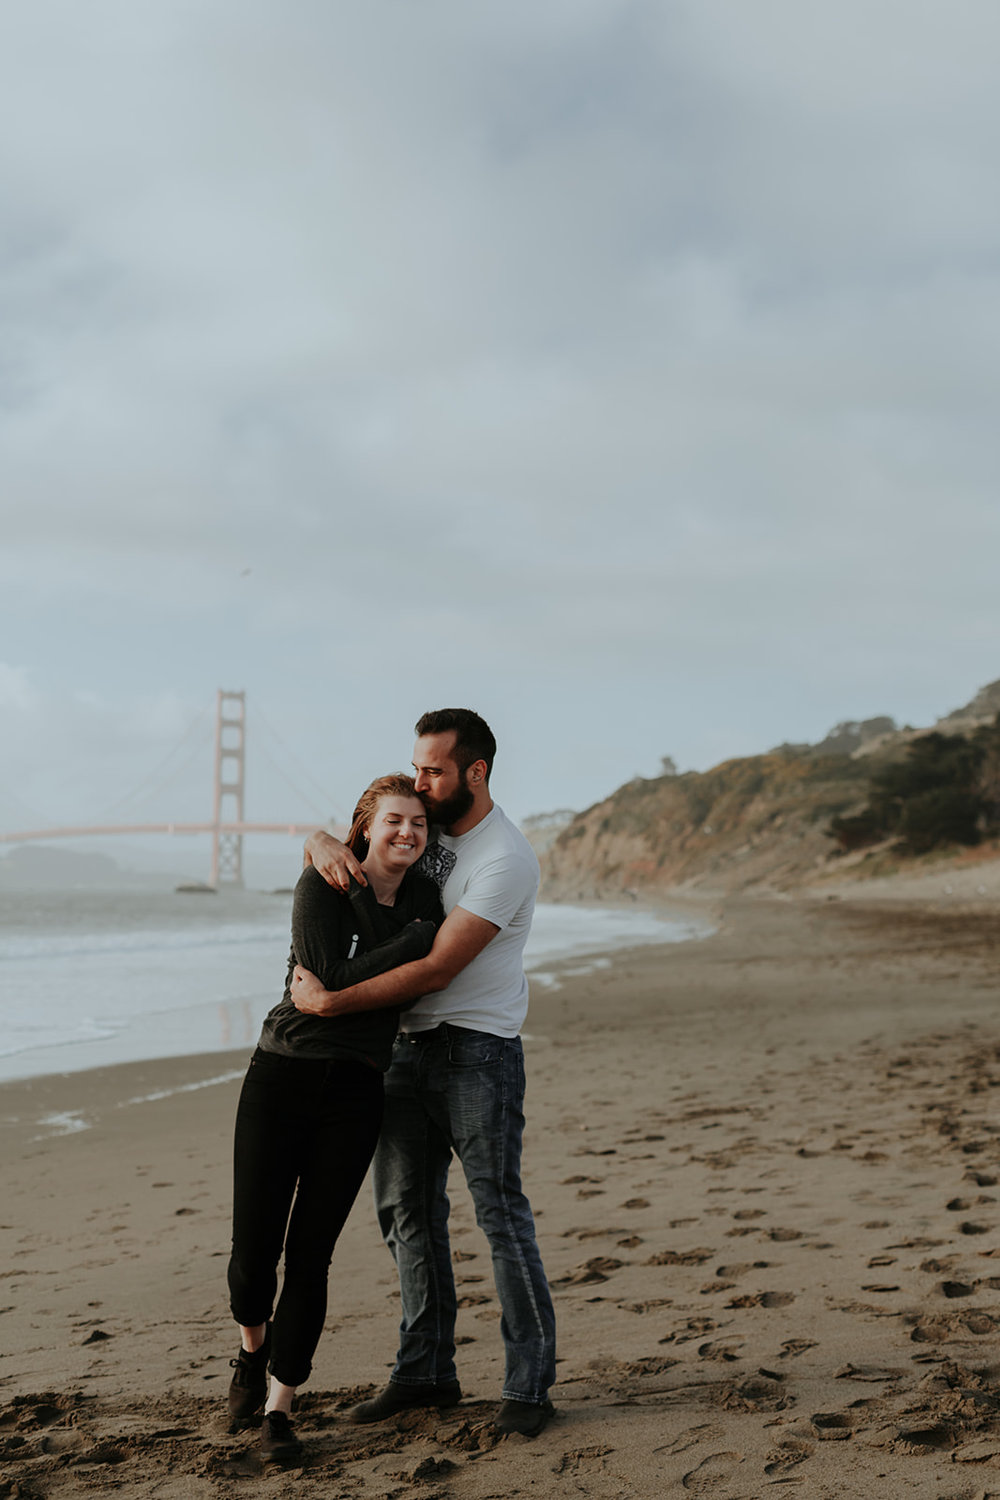 Rachel-and-Duncan-sanfran-engagement-session-earthbelowphoto-2018-58.jpg